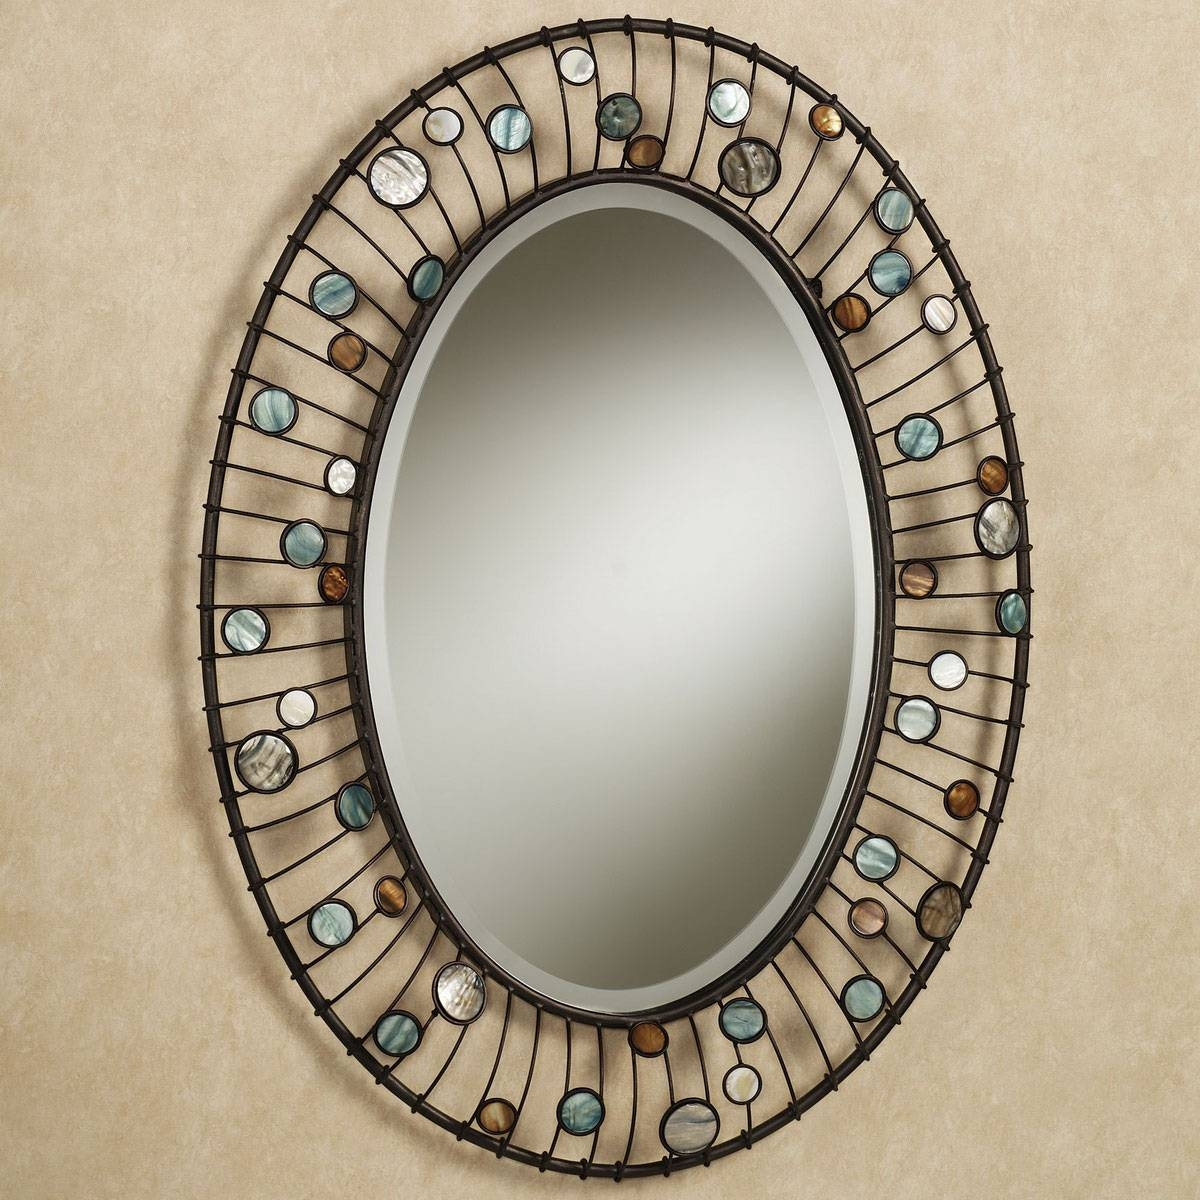 Bathroom: Bronze Framed Mirror | Oval Mirrors For Bathroom | Oval In Oval Mirrors For Walls (View 5 of 25)